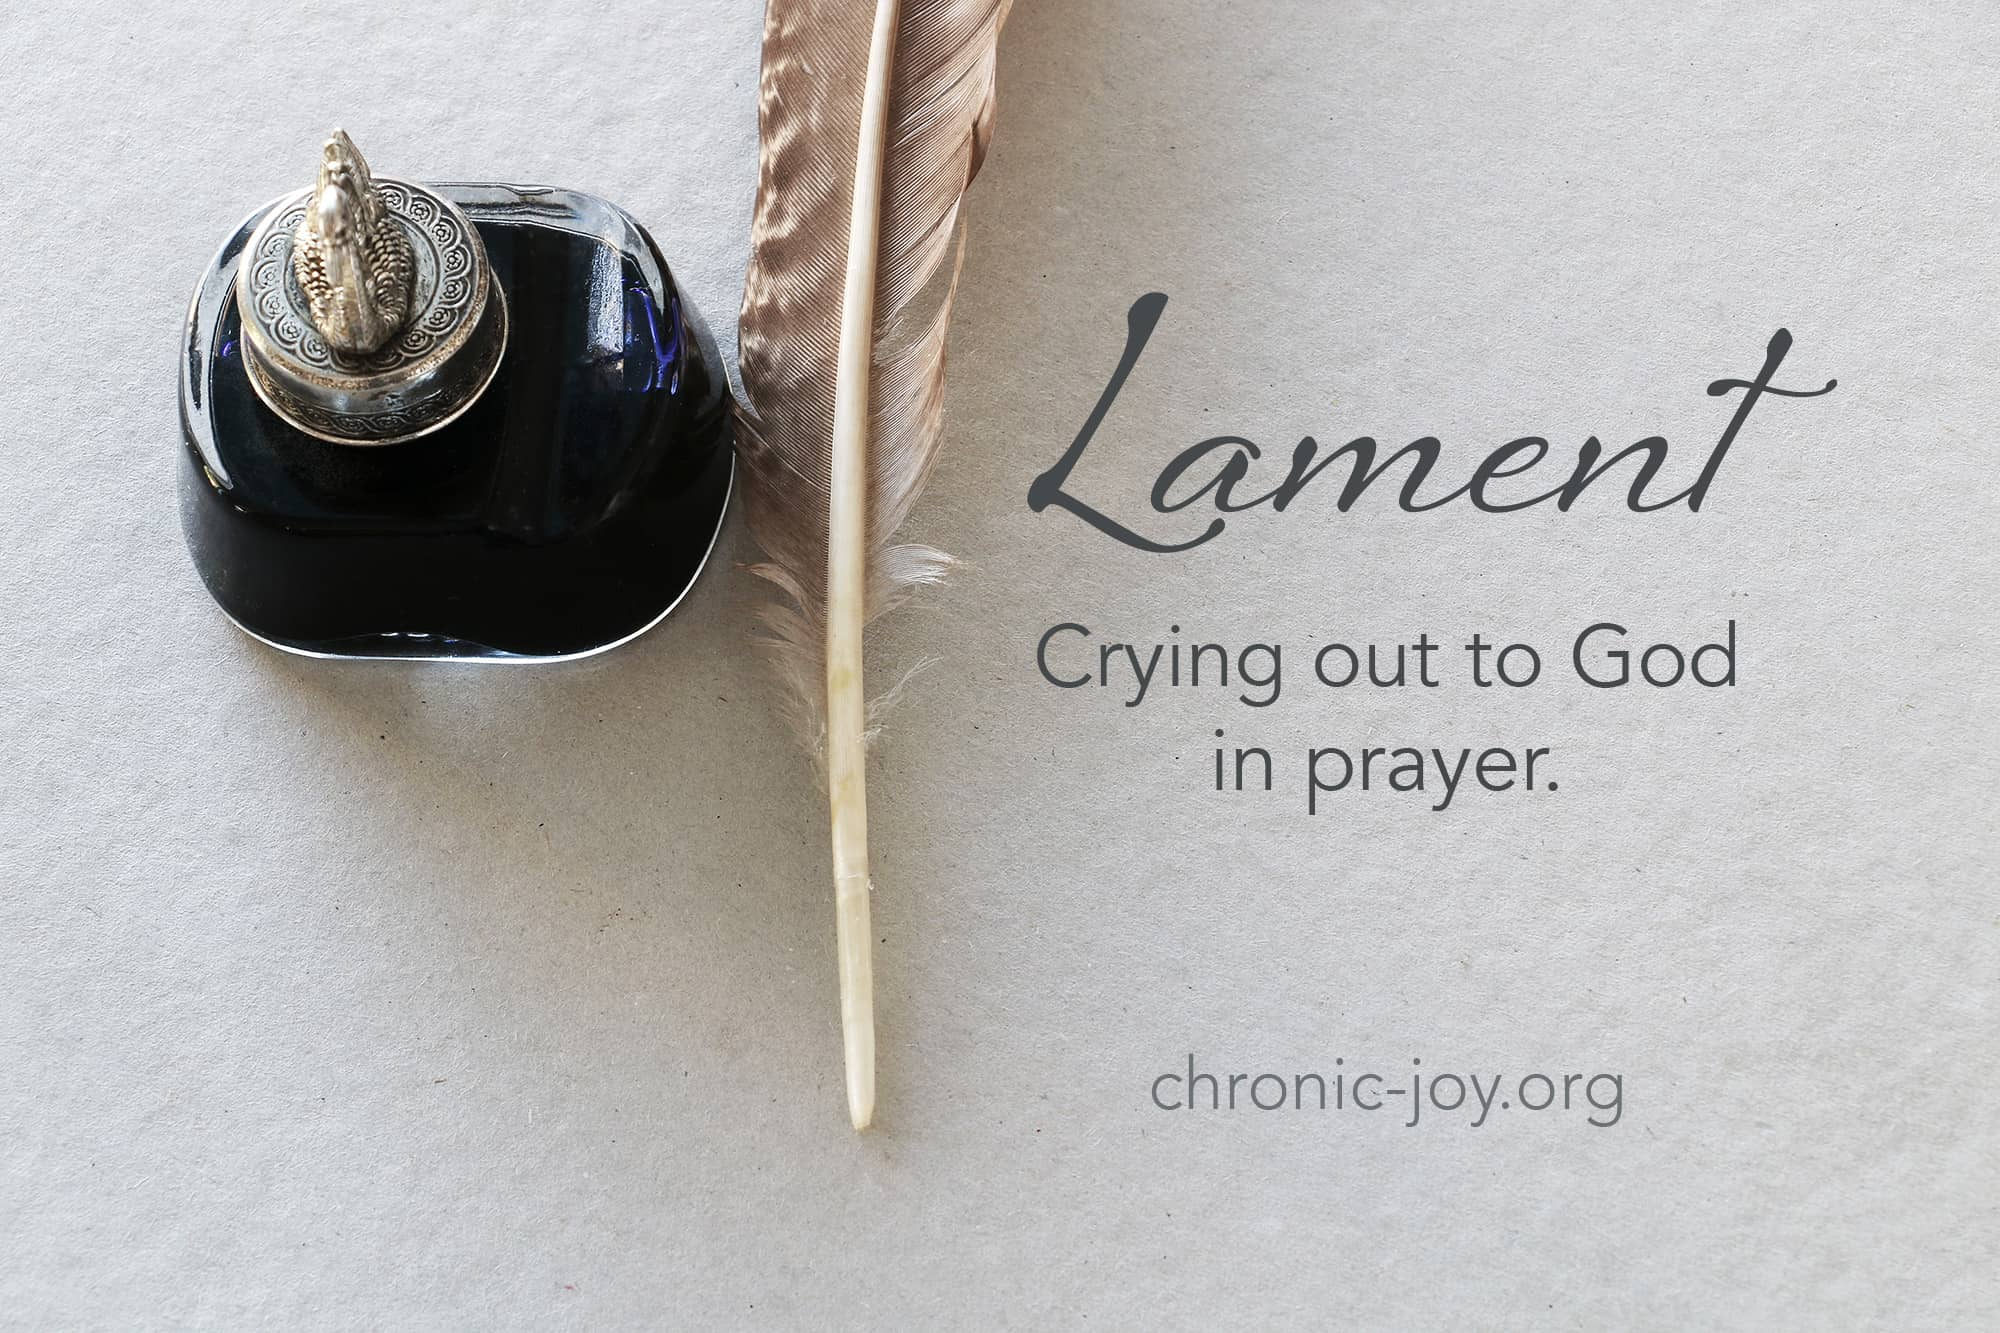 Lament - Crying out to God in prayer